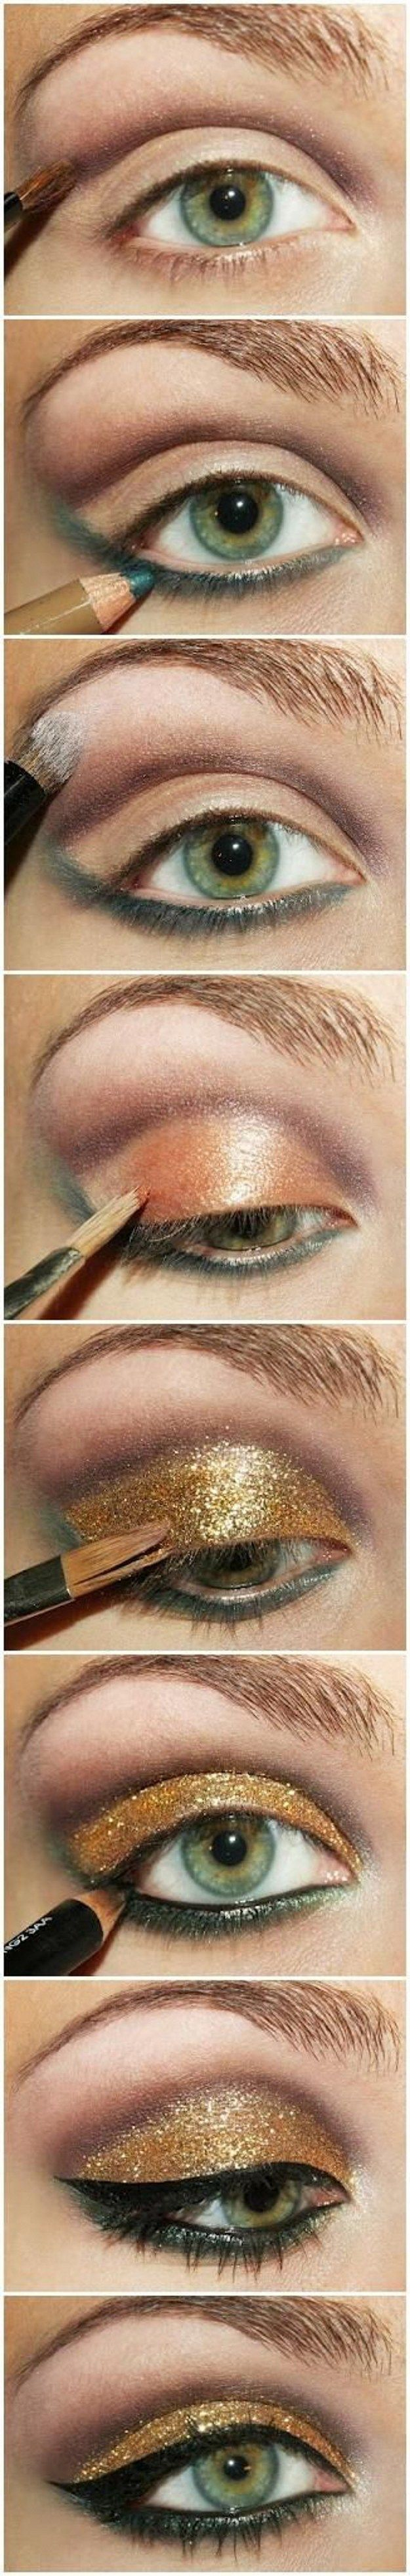 Beautiful Glitter Gold and Green Eyeshadow Makeup | Prom Makeup by Makeup Tutorials at http://makeuptutorials.com/12-best-makeup-tutorials-for-green-eyes